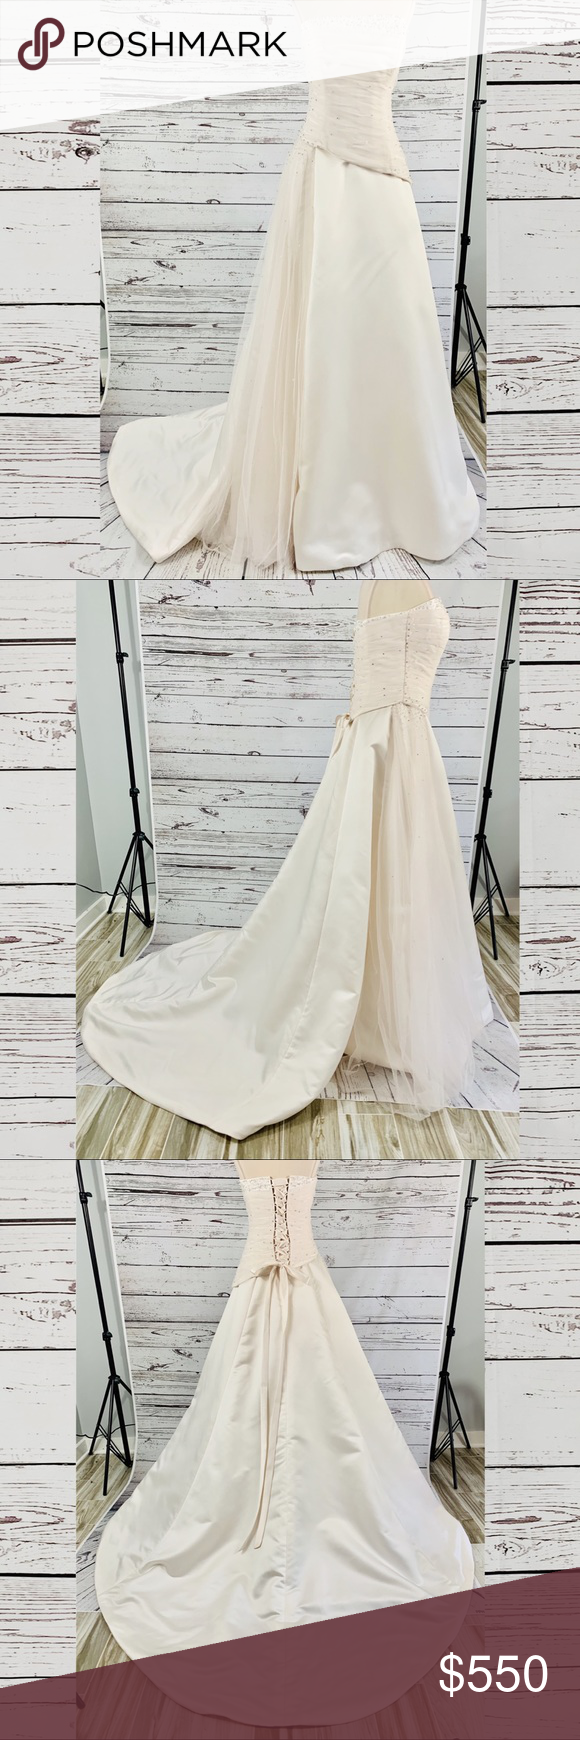 Spotted While Shopping On Poshmark Maggie Sottero Blush Wedding Gown Beaded Strapless Poshma Beaded Wedding Gowns Blush Wedding Gown Celebrity Wedding Gowns